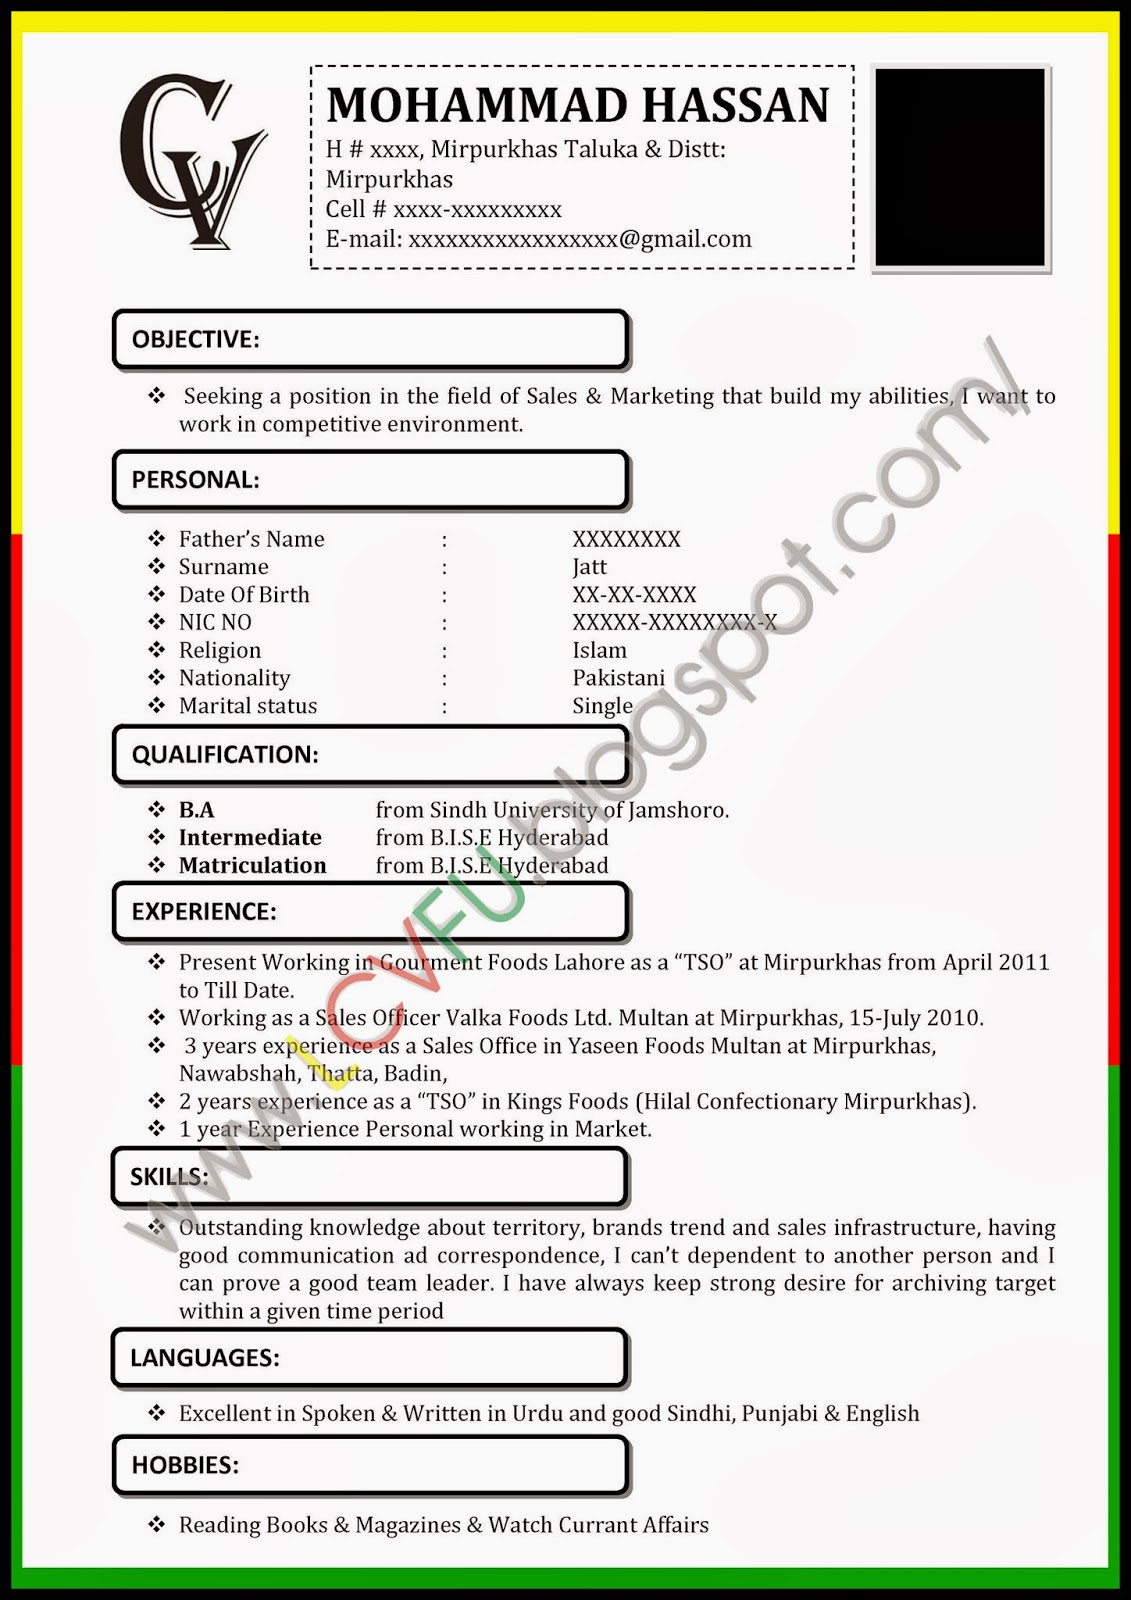 cv layout science service resume cv layout science cv templates curriculum vitae template cv template format latest cv format 2014 new